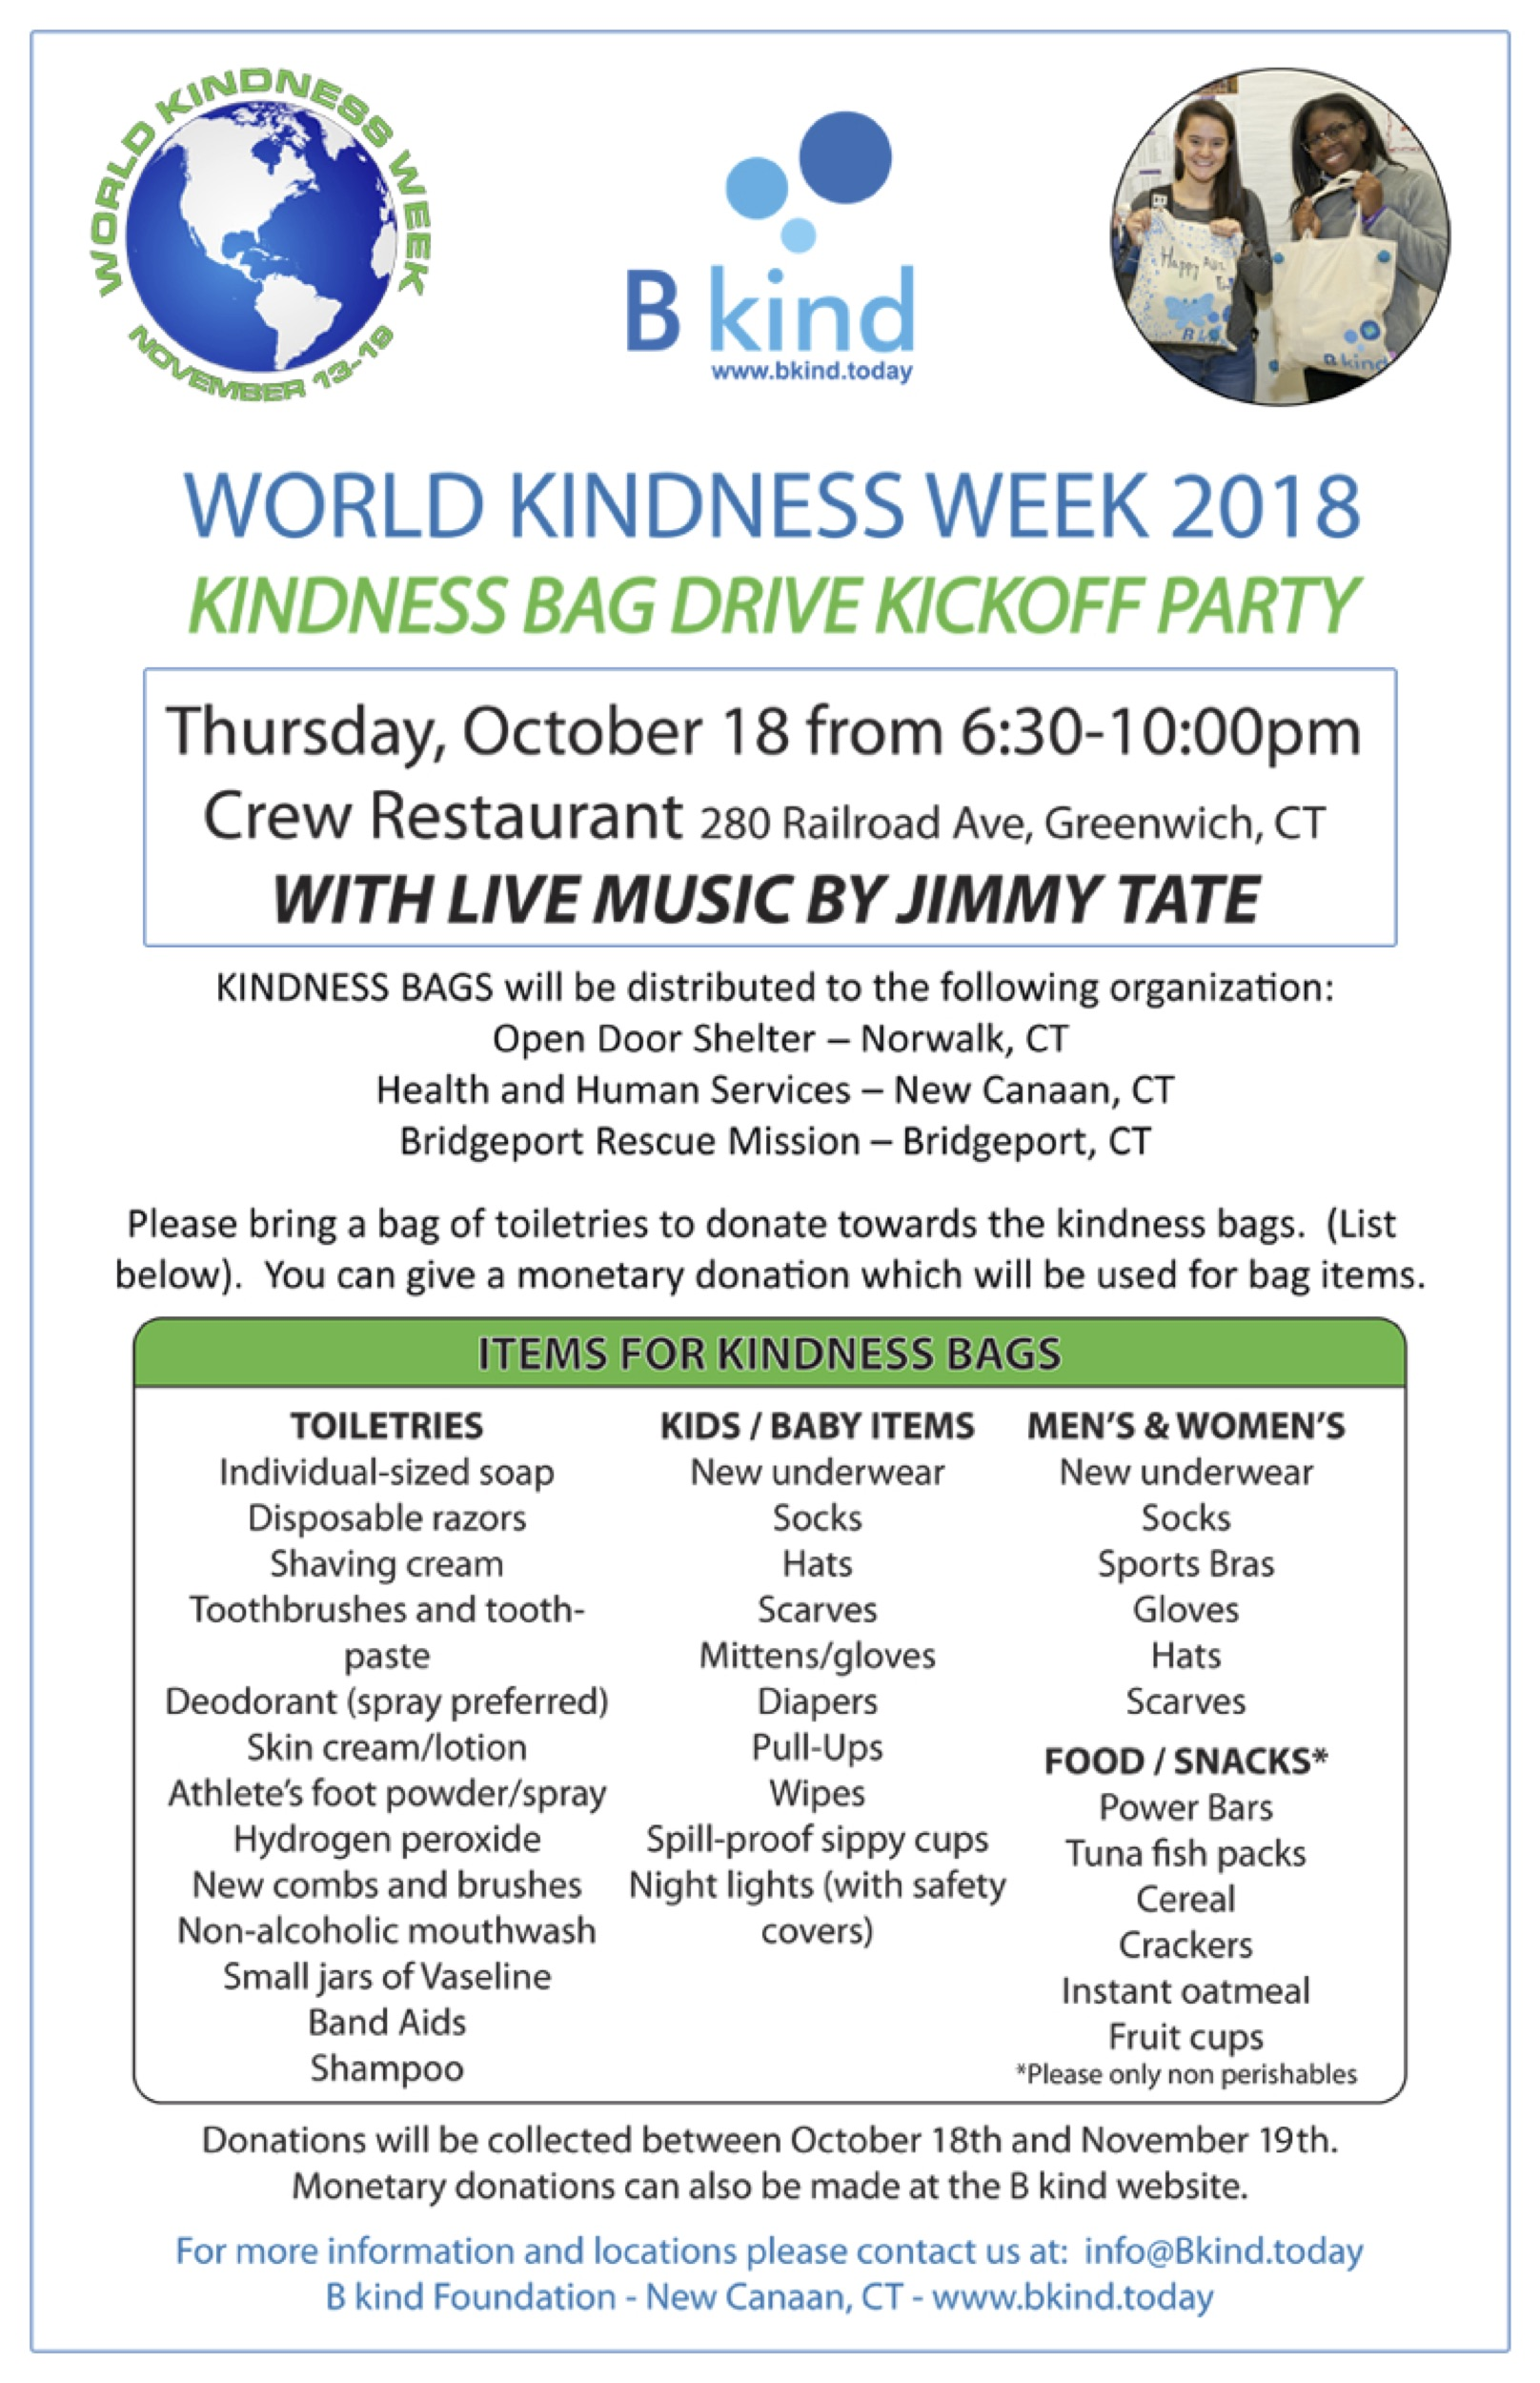 World Kindness Week Kickoff Party 2018 flyer 11x17sm copy.jpg